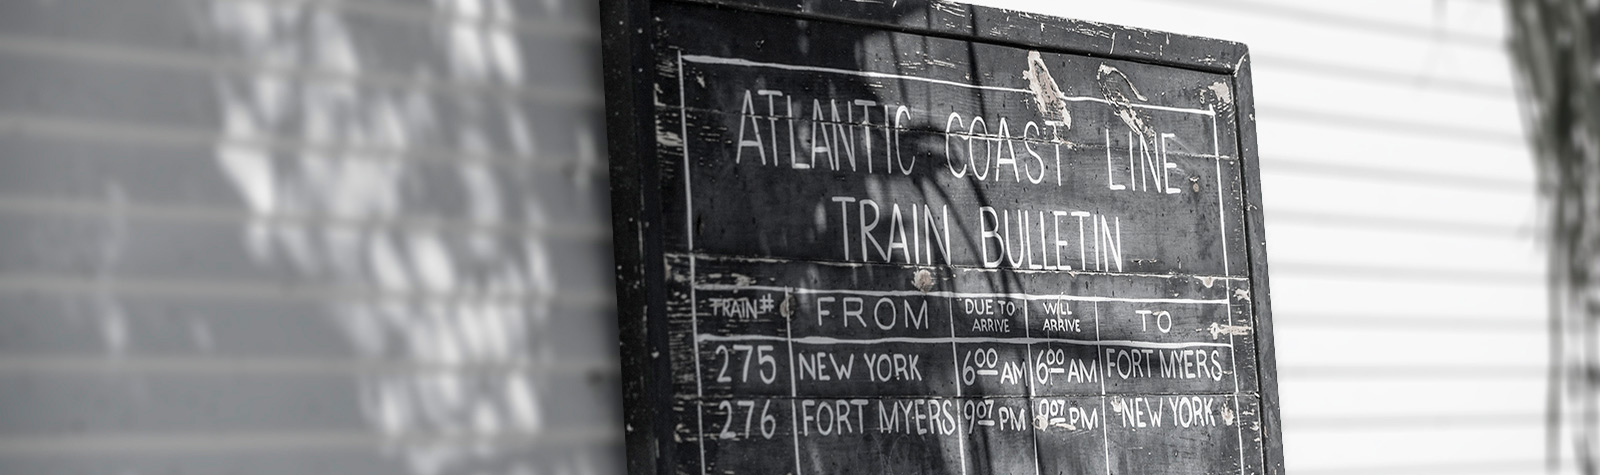 sign with information about the Atlantic Coast train schedule